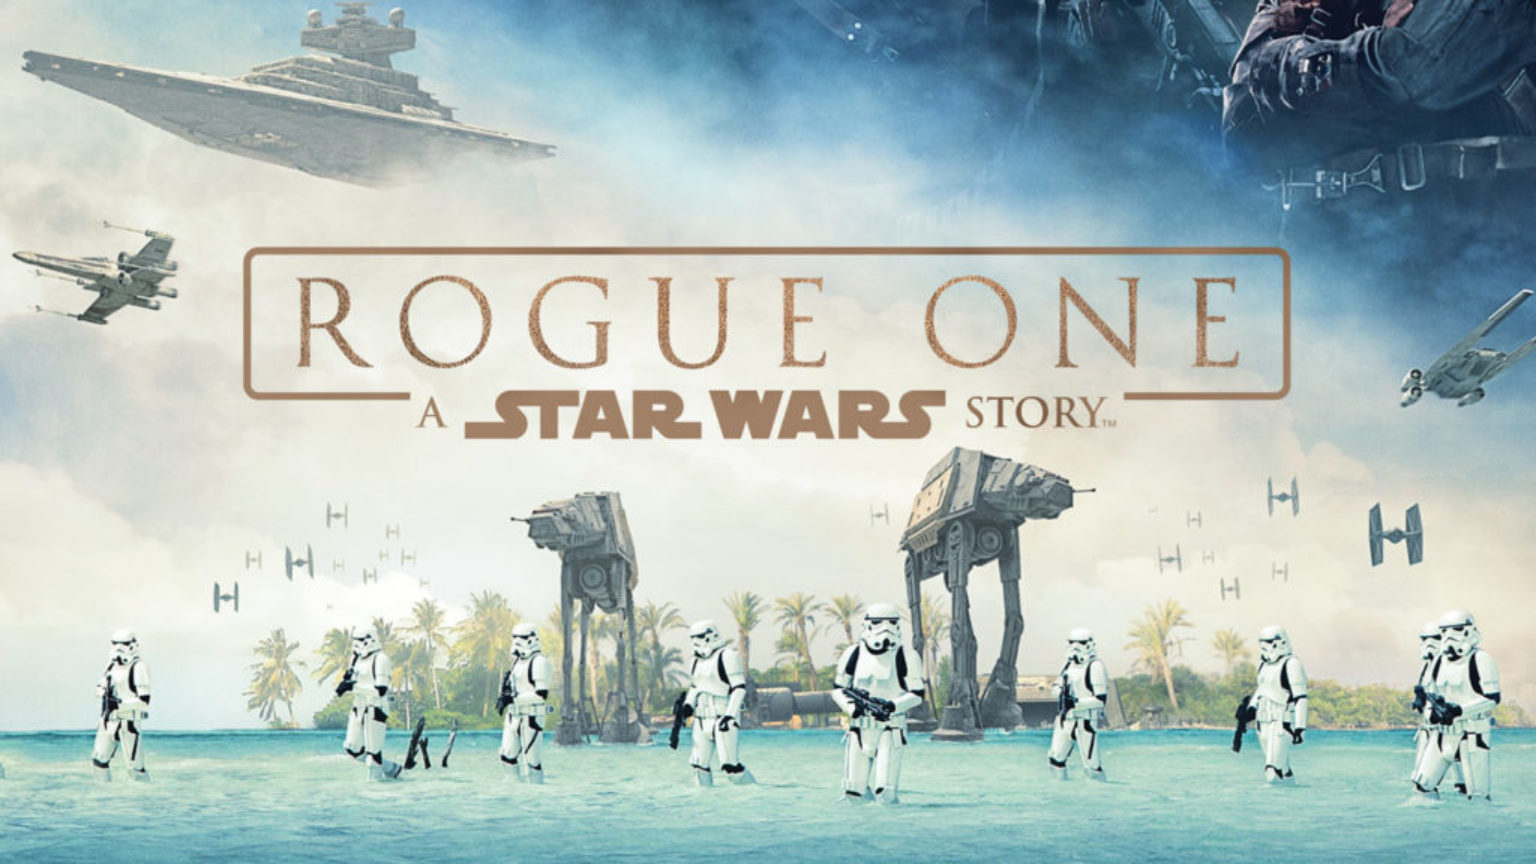 Star Wars: Rogue One alternate ending